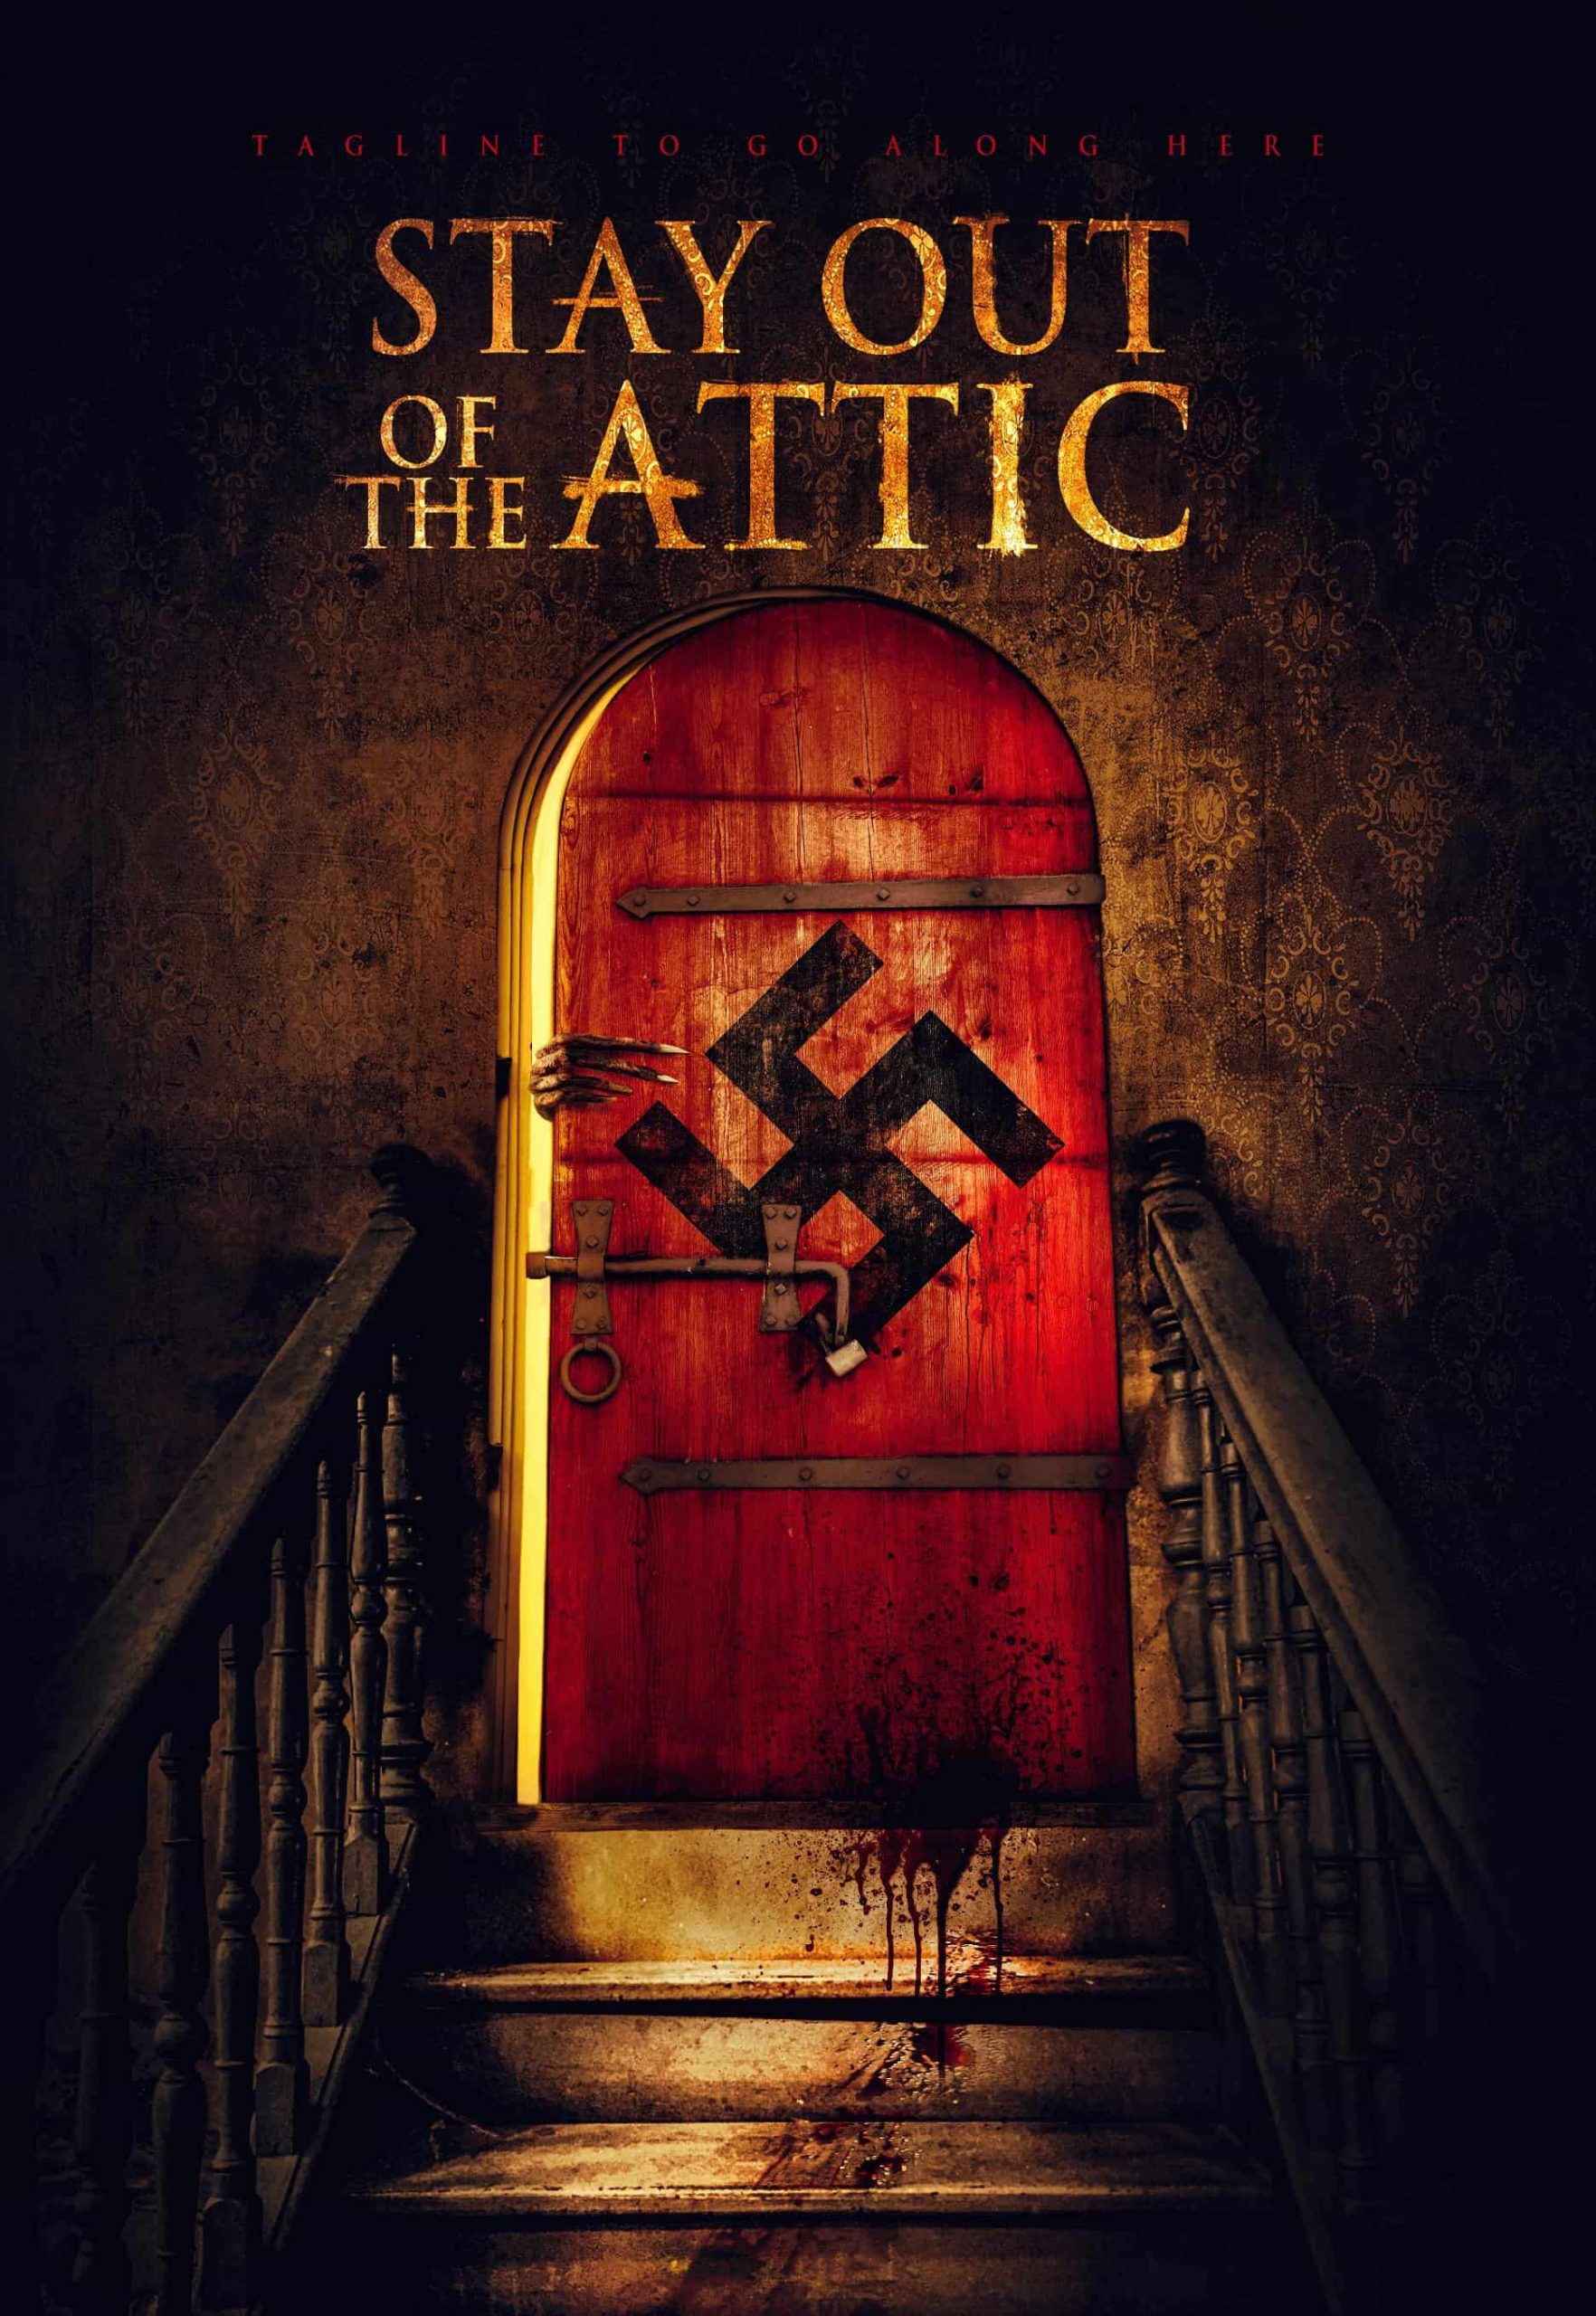 STAY OUT FROM THE ATTIC